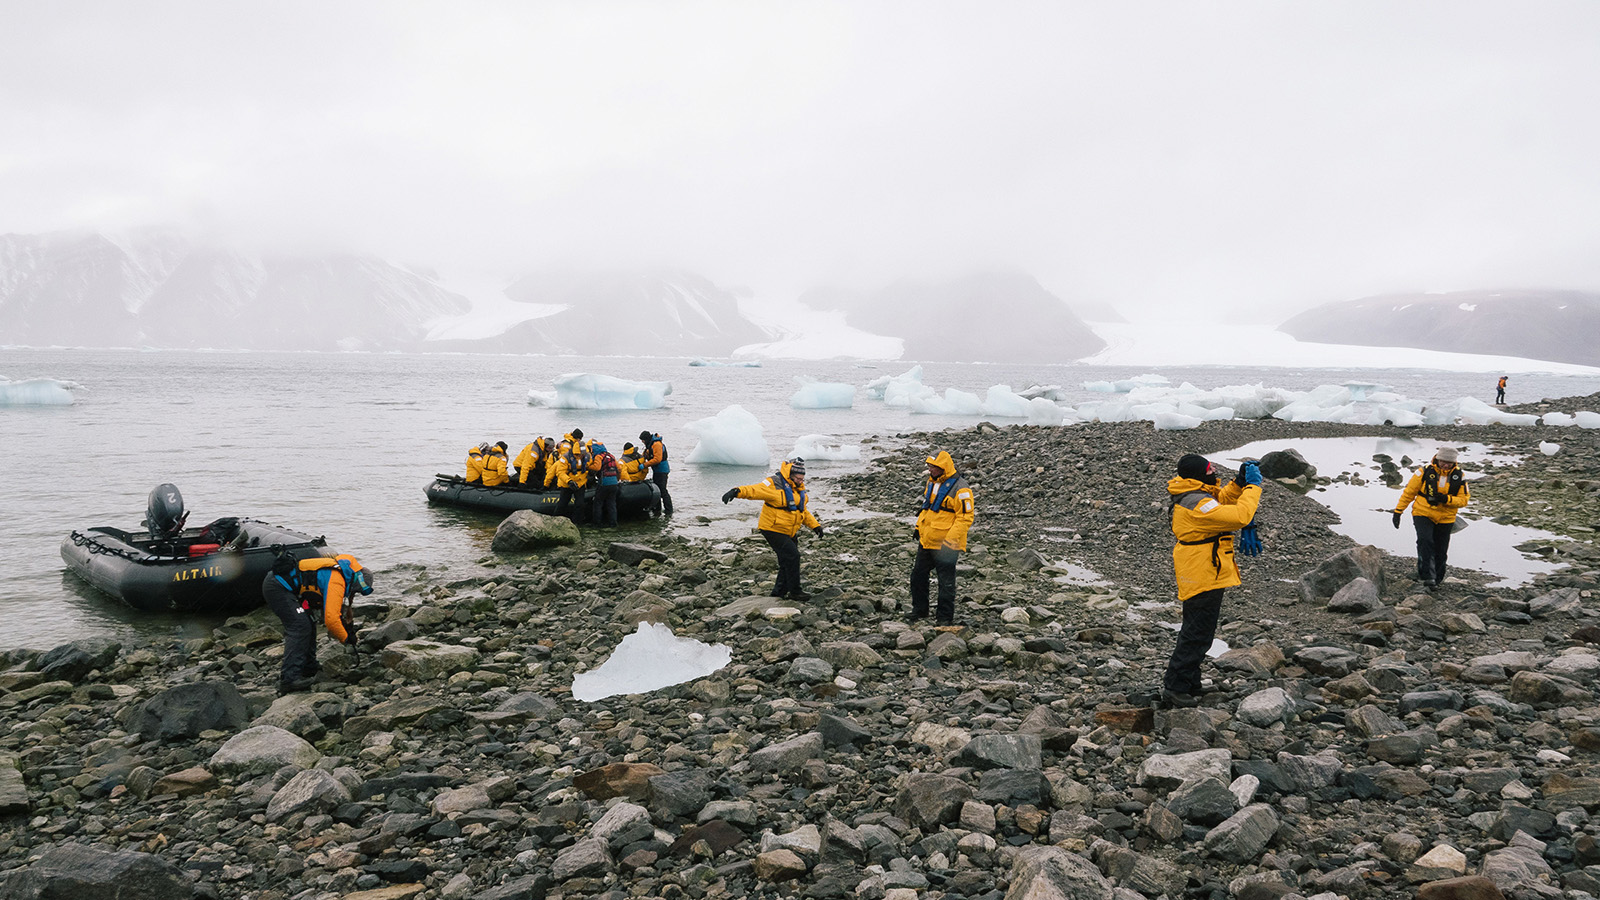 Quark Expeditions guests on a shore landing to view glaciers at Ellesmere Island in Nunavut, which is also home to Baffin Island.